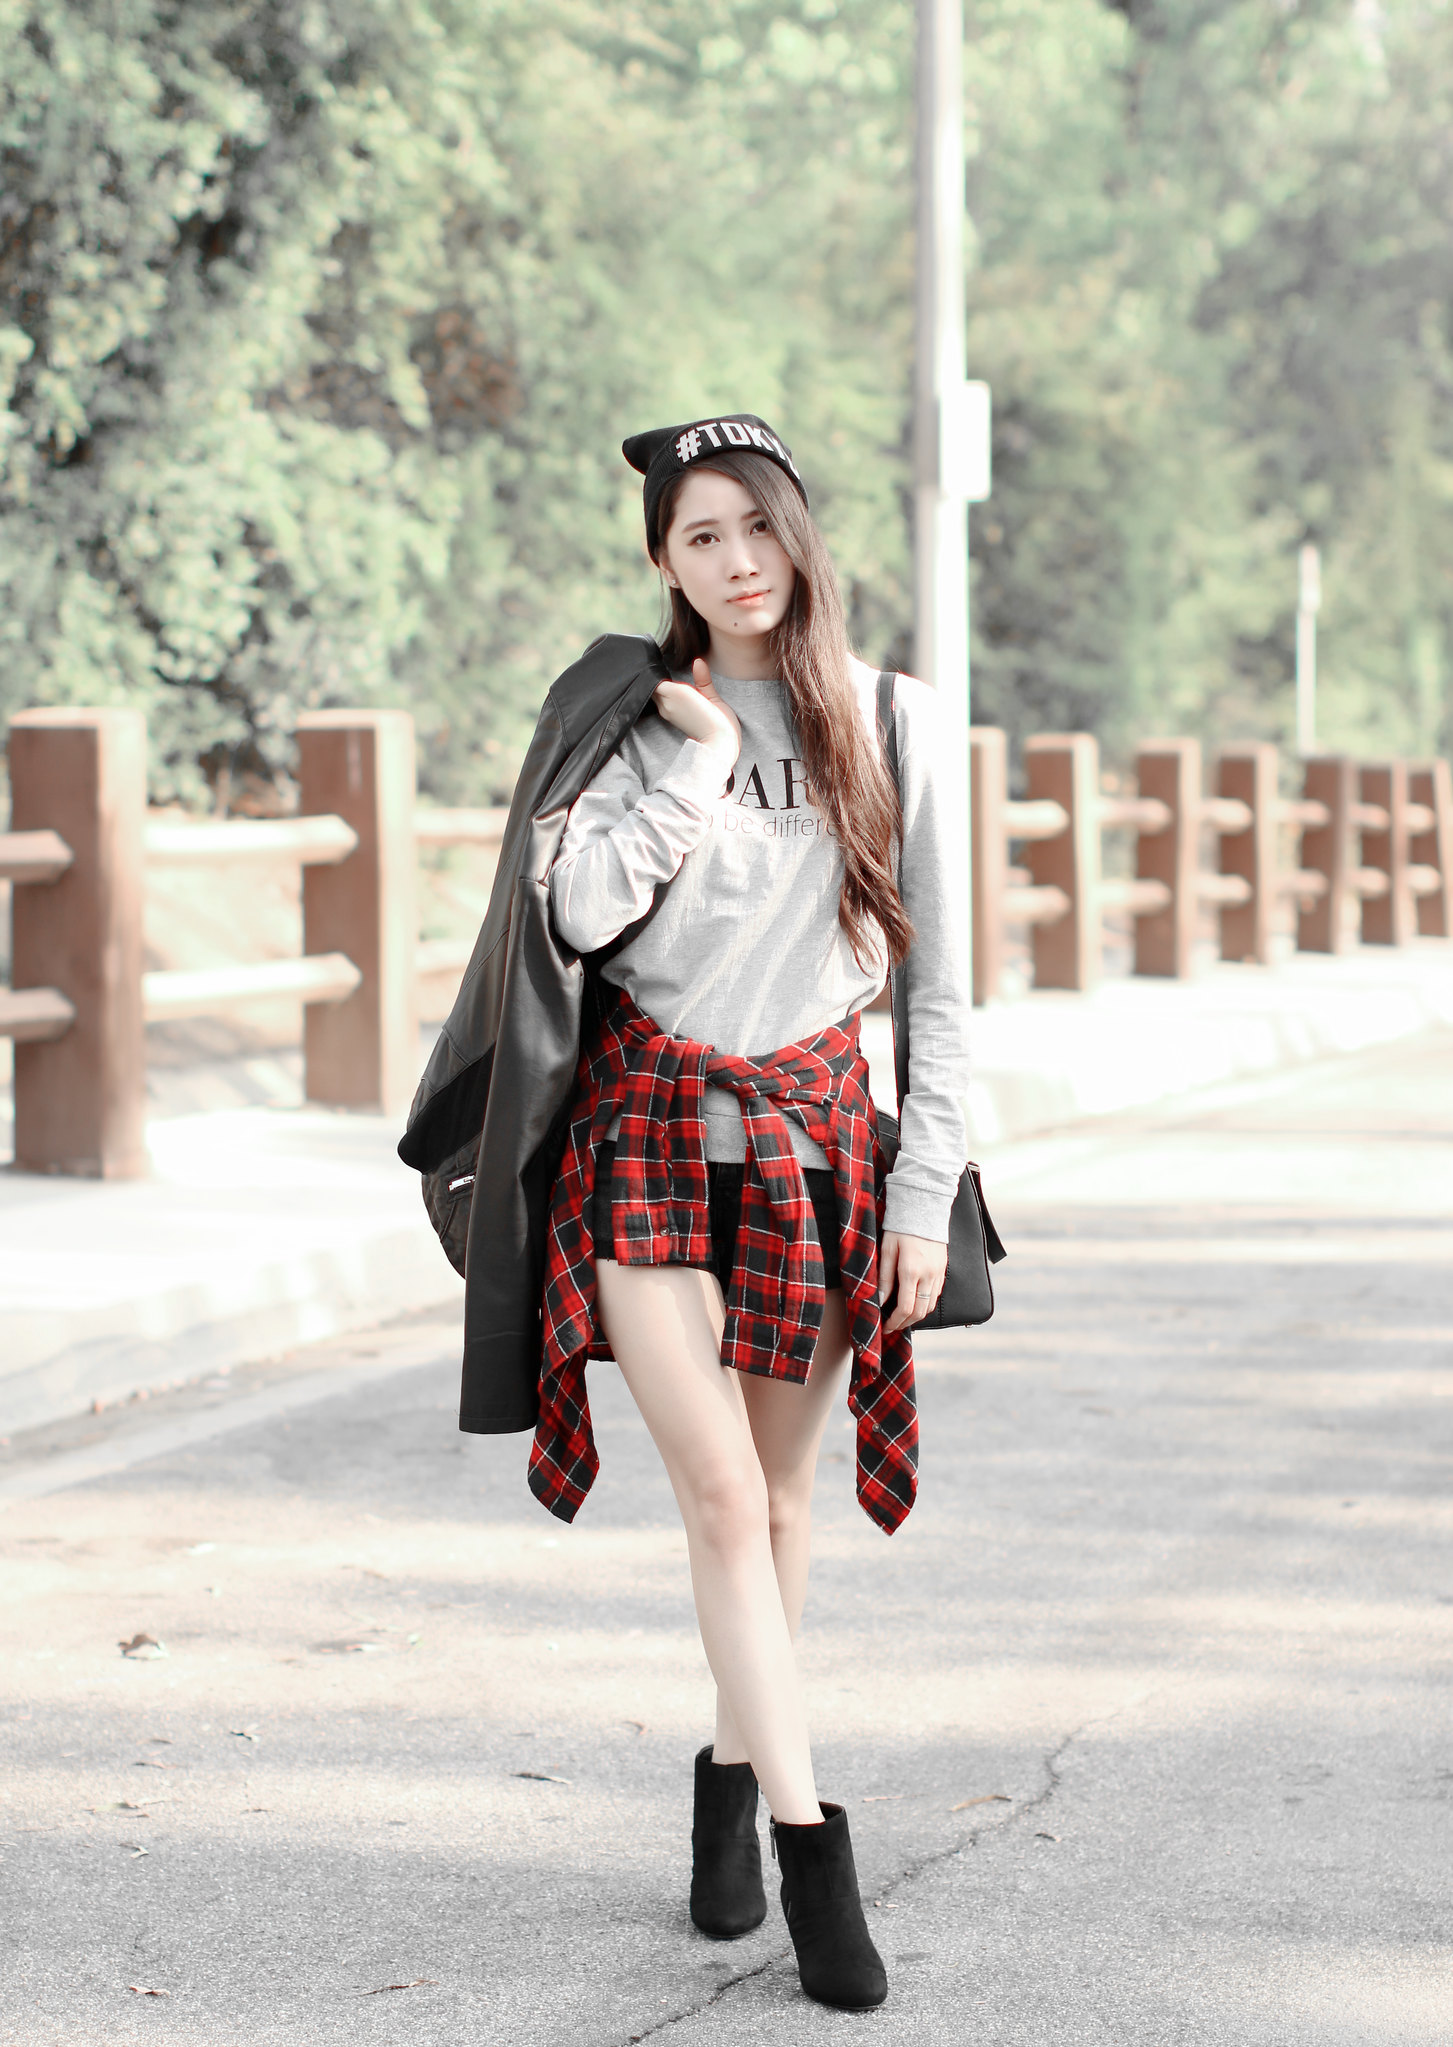 0657-sporty-chic-sweatshirt-ootd-fall2016-autumn-ulzzang-korean-fashion